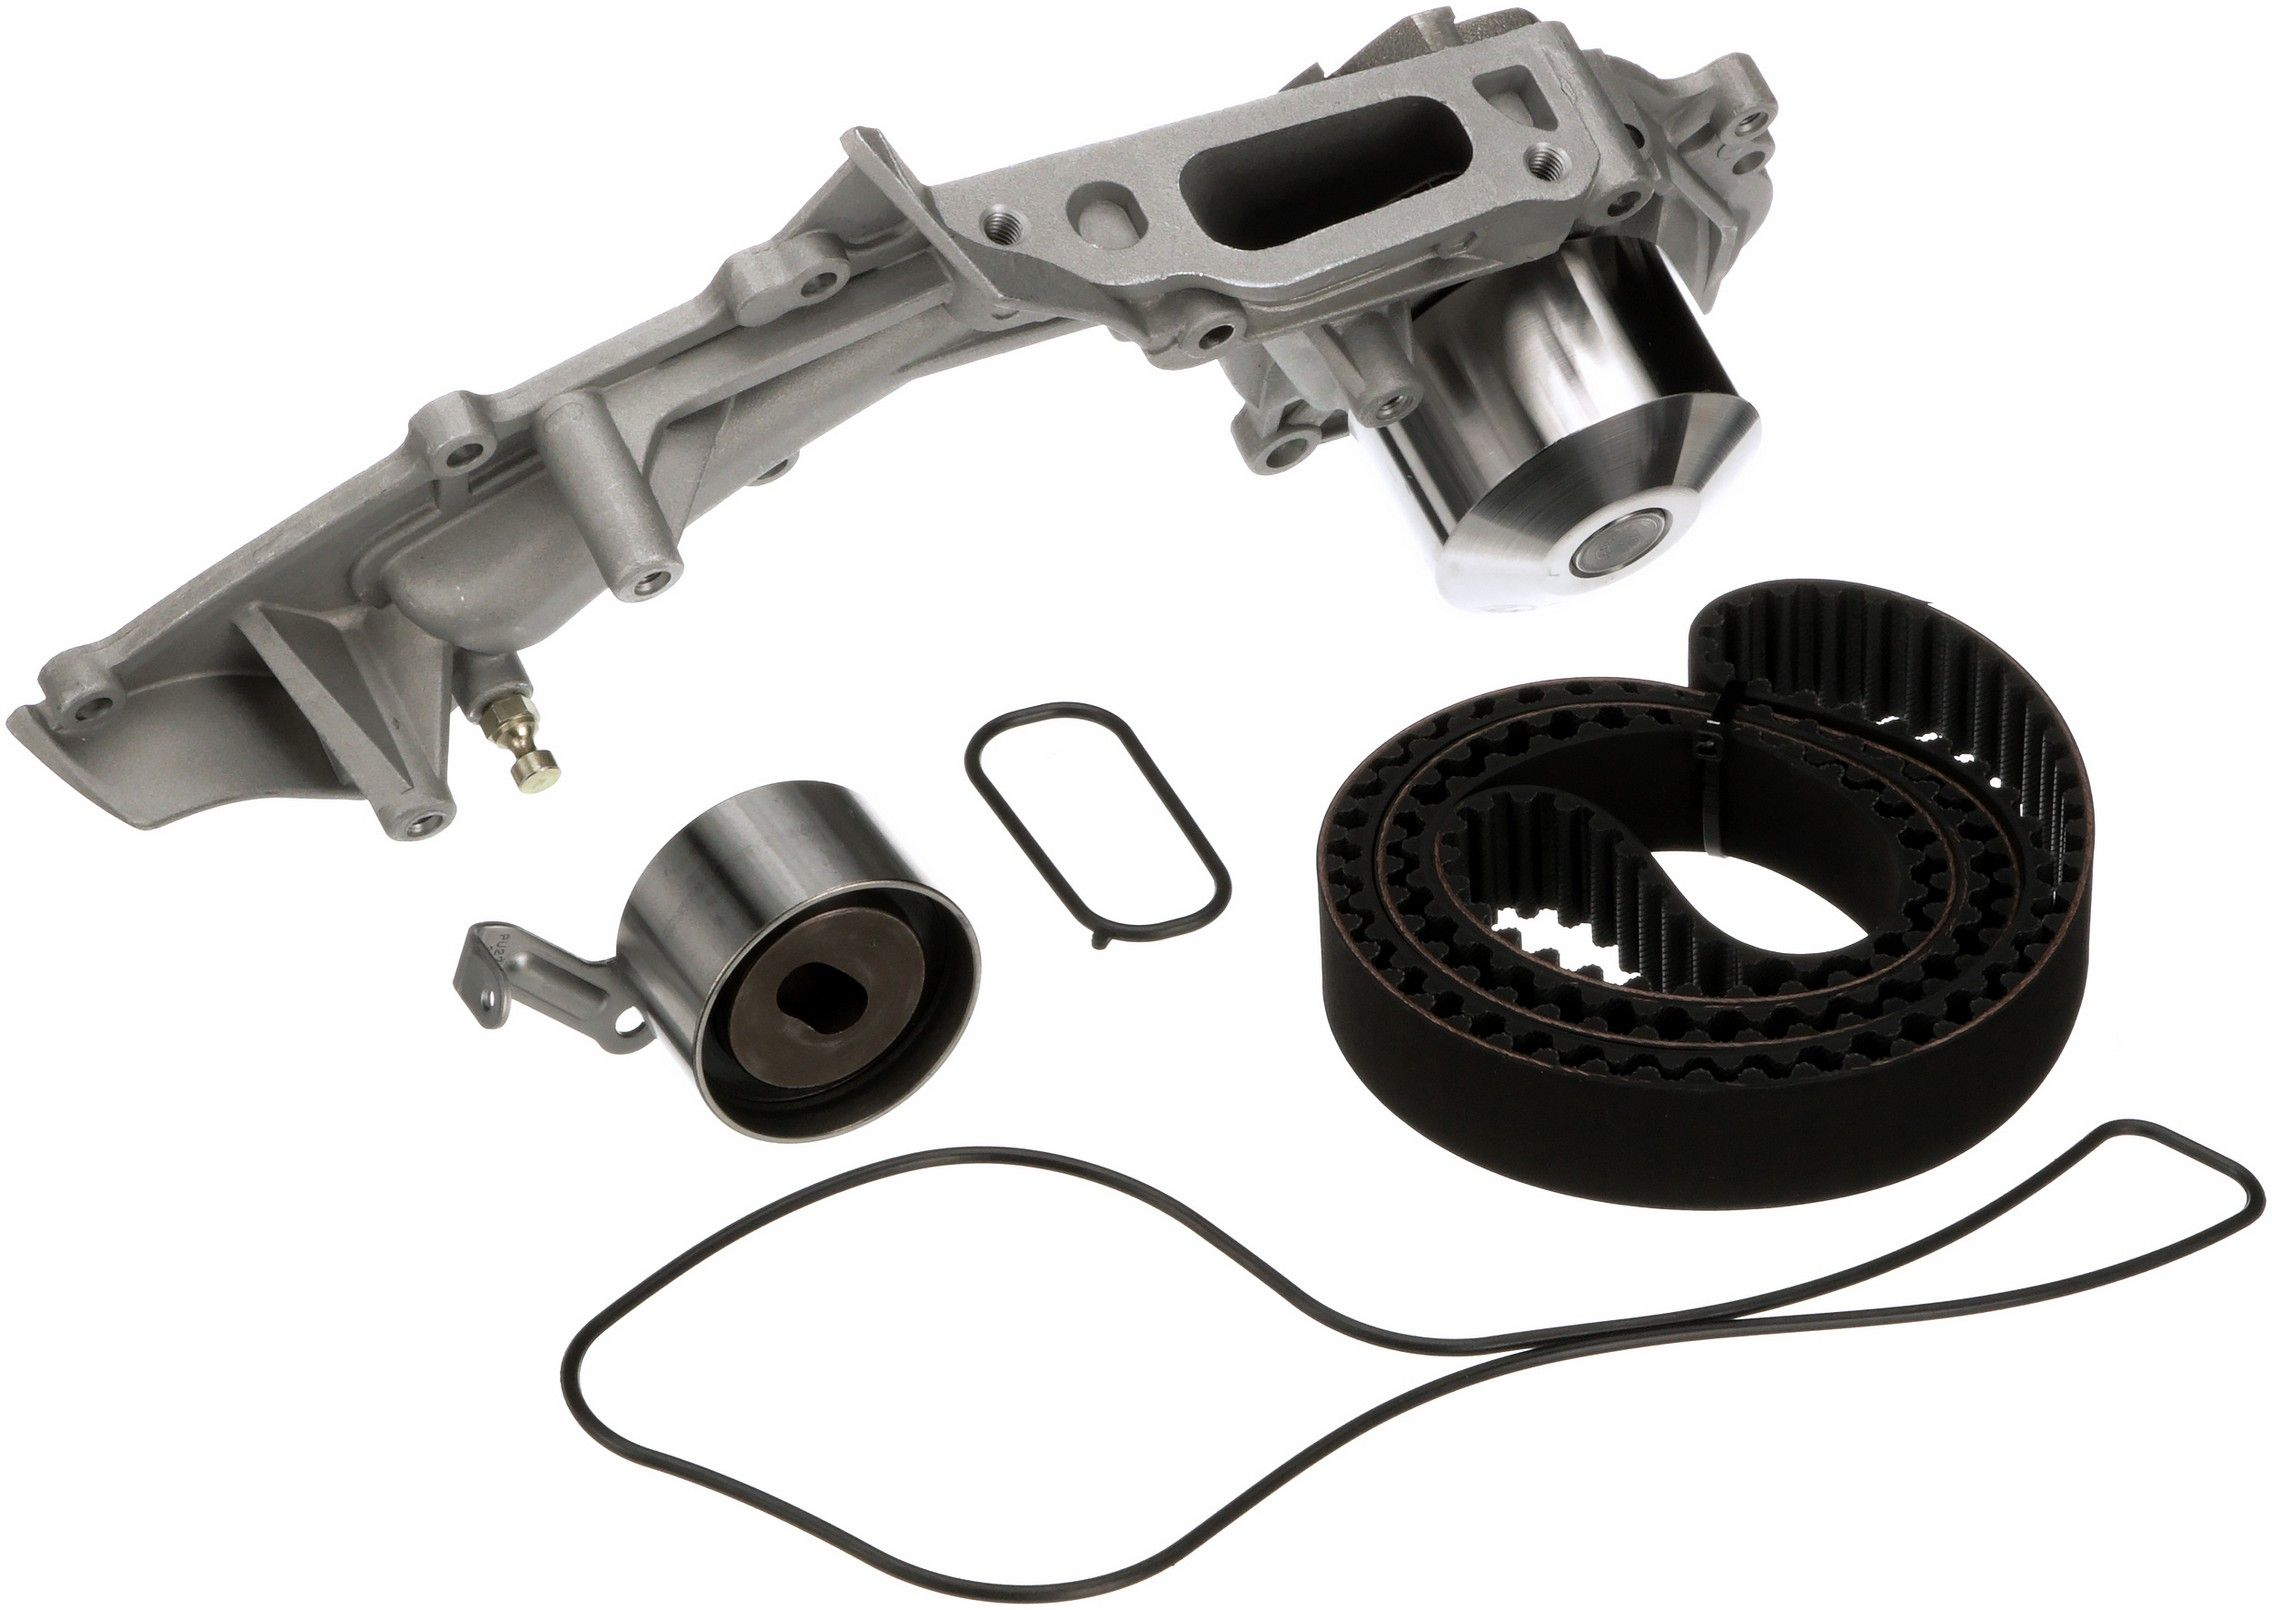 1998 Acura TL Engine Timing Belt Kit with Water Pump 6 Cyl 3.2L (Gates  TCKWP193A) Interference engine application .